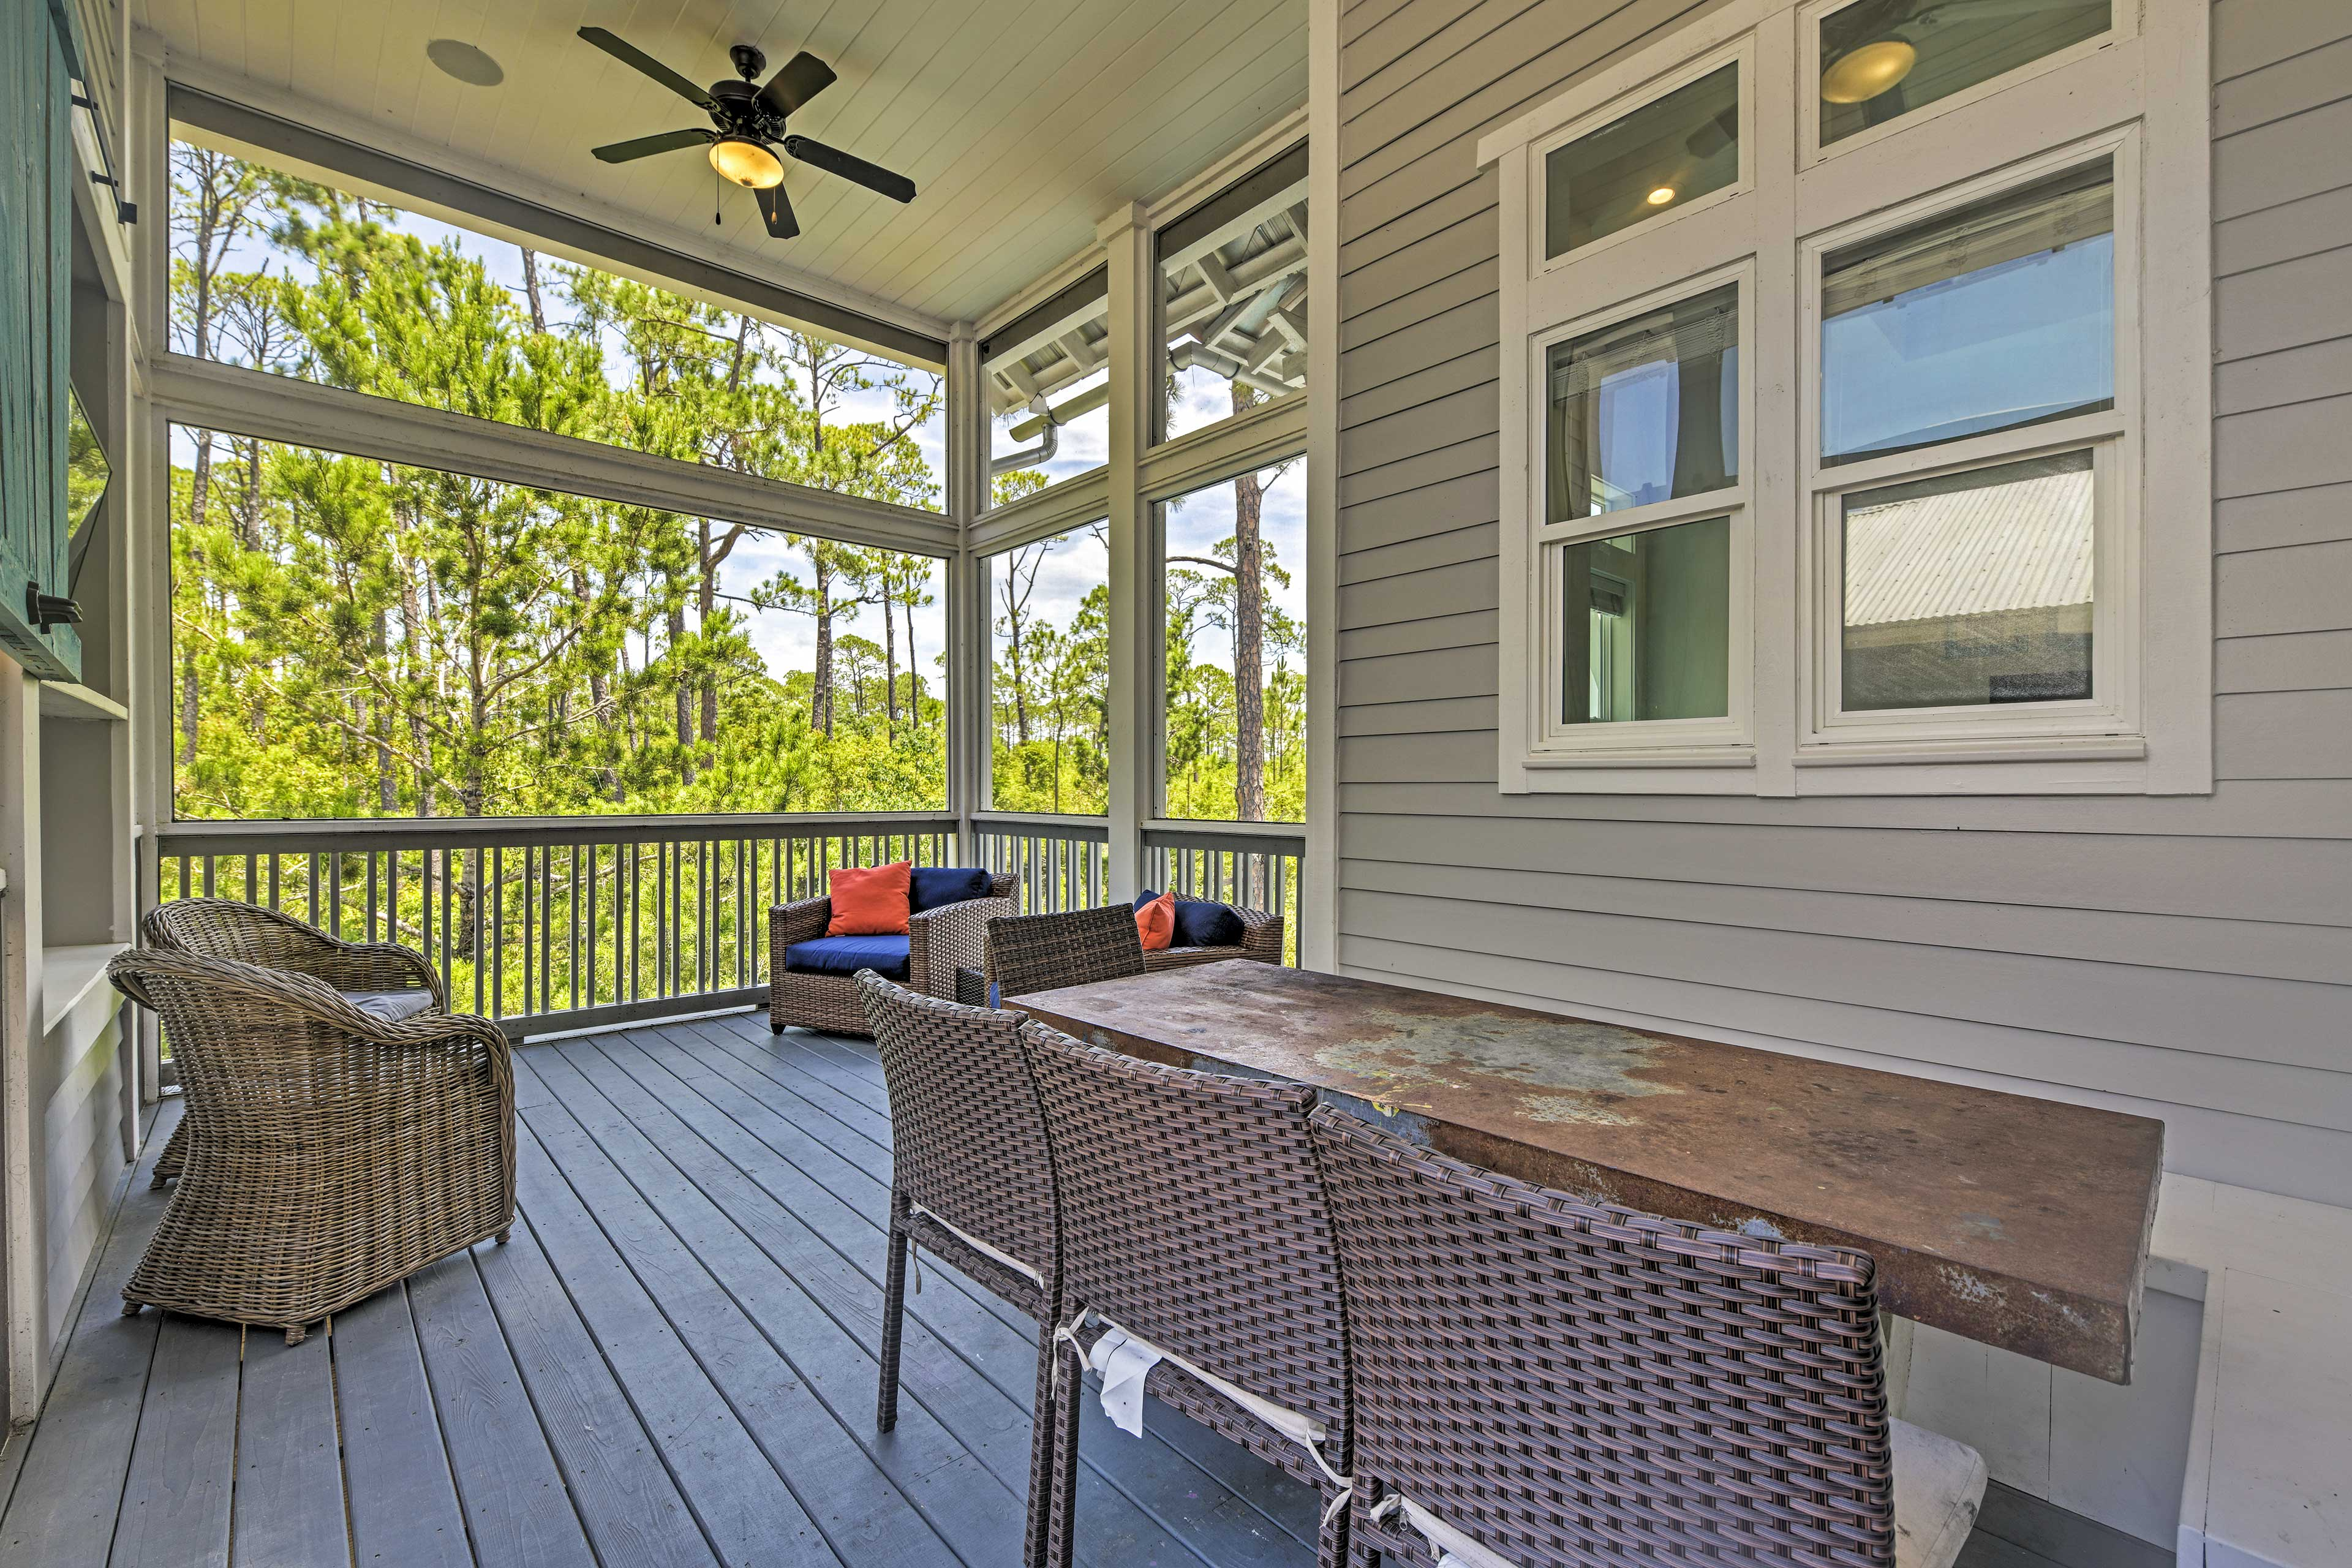 Step out to the enclosed sunroom for Barn doors slide over to reveal a Smart TV.